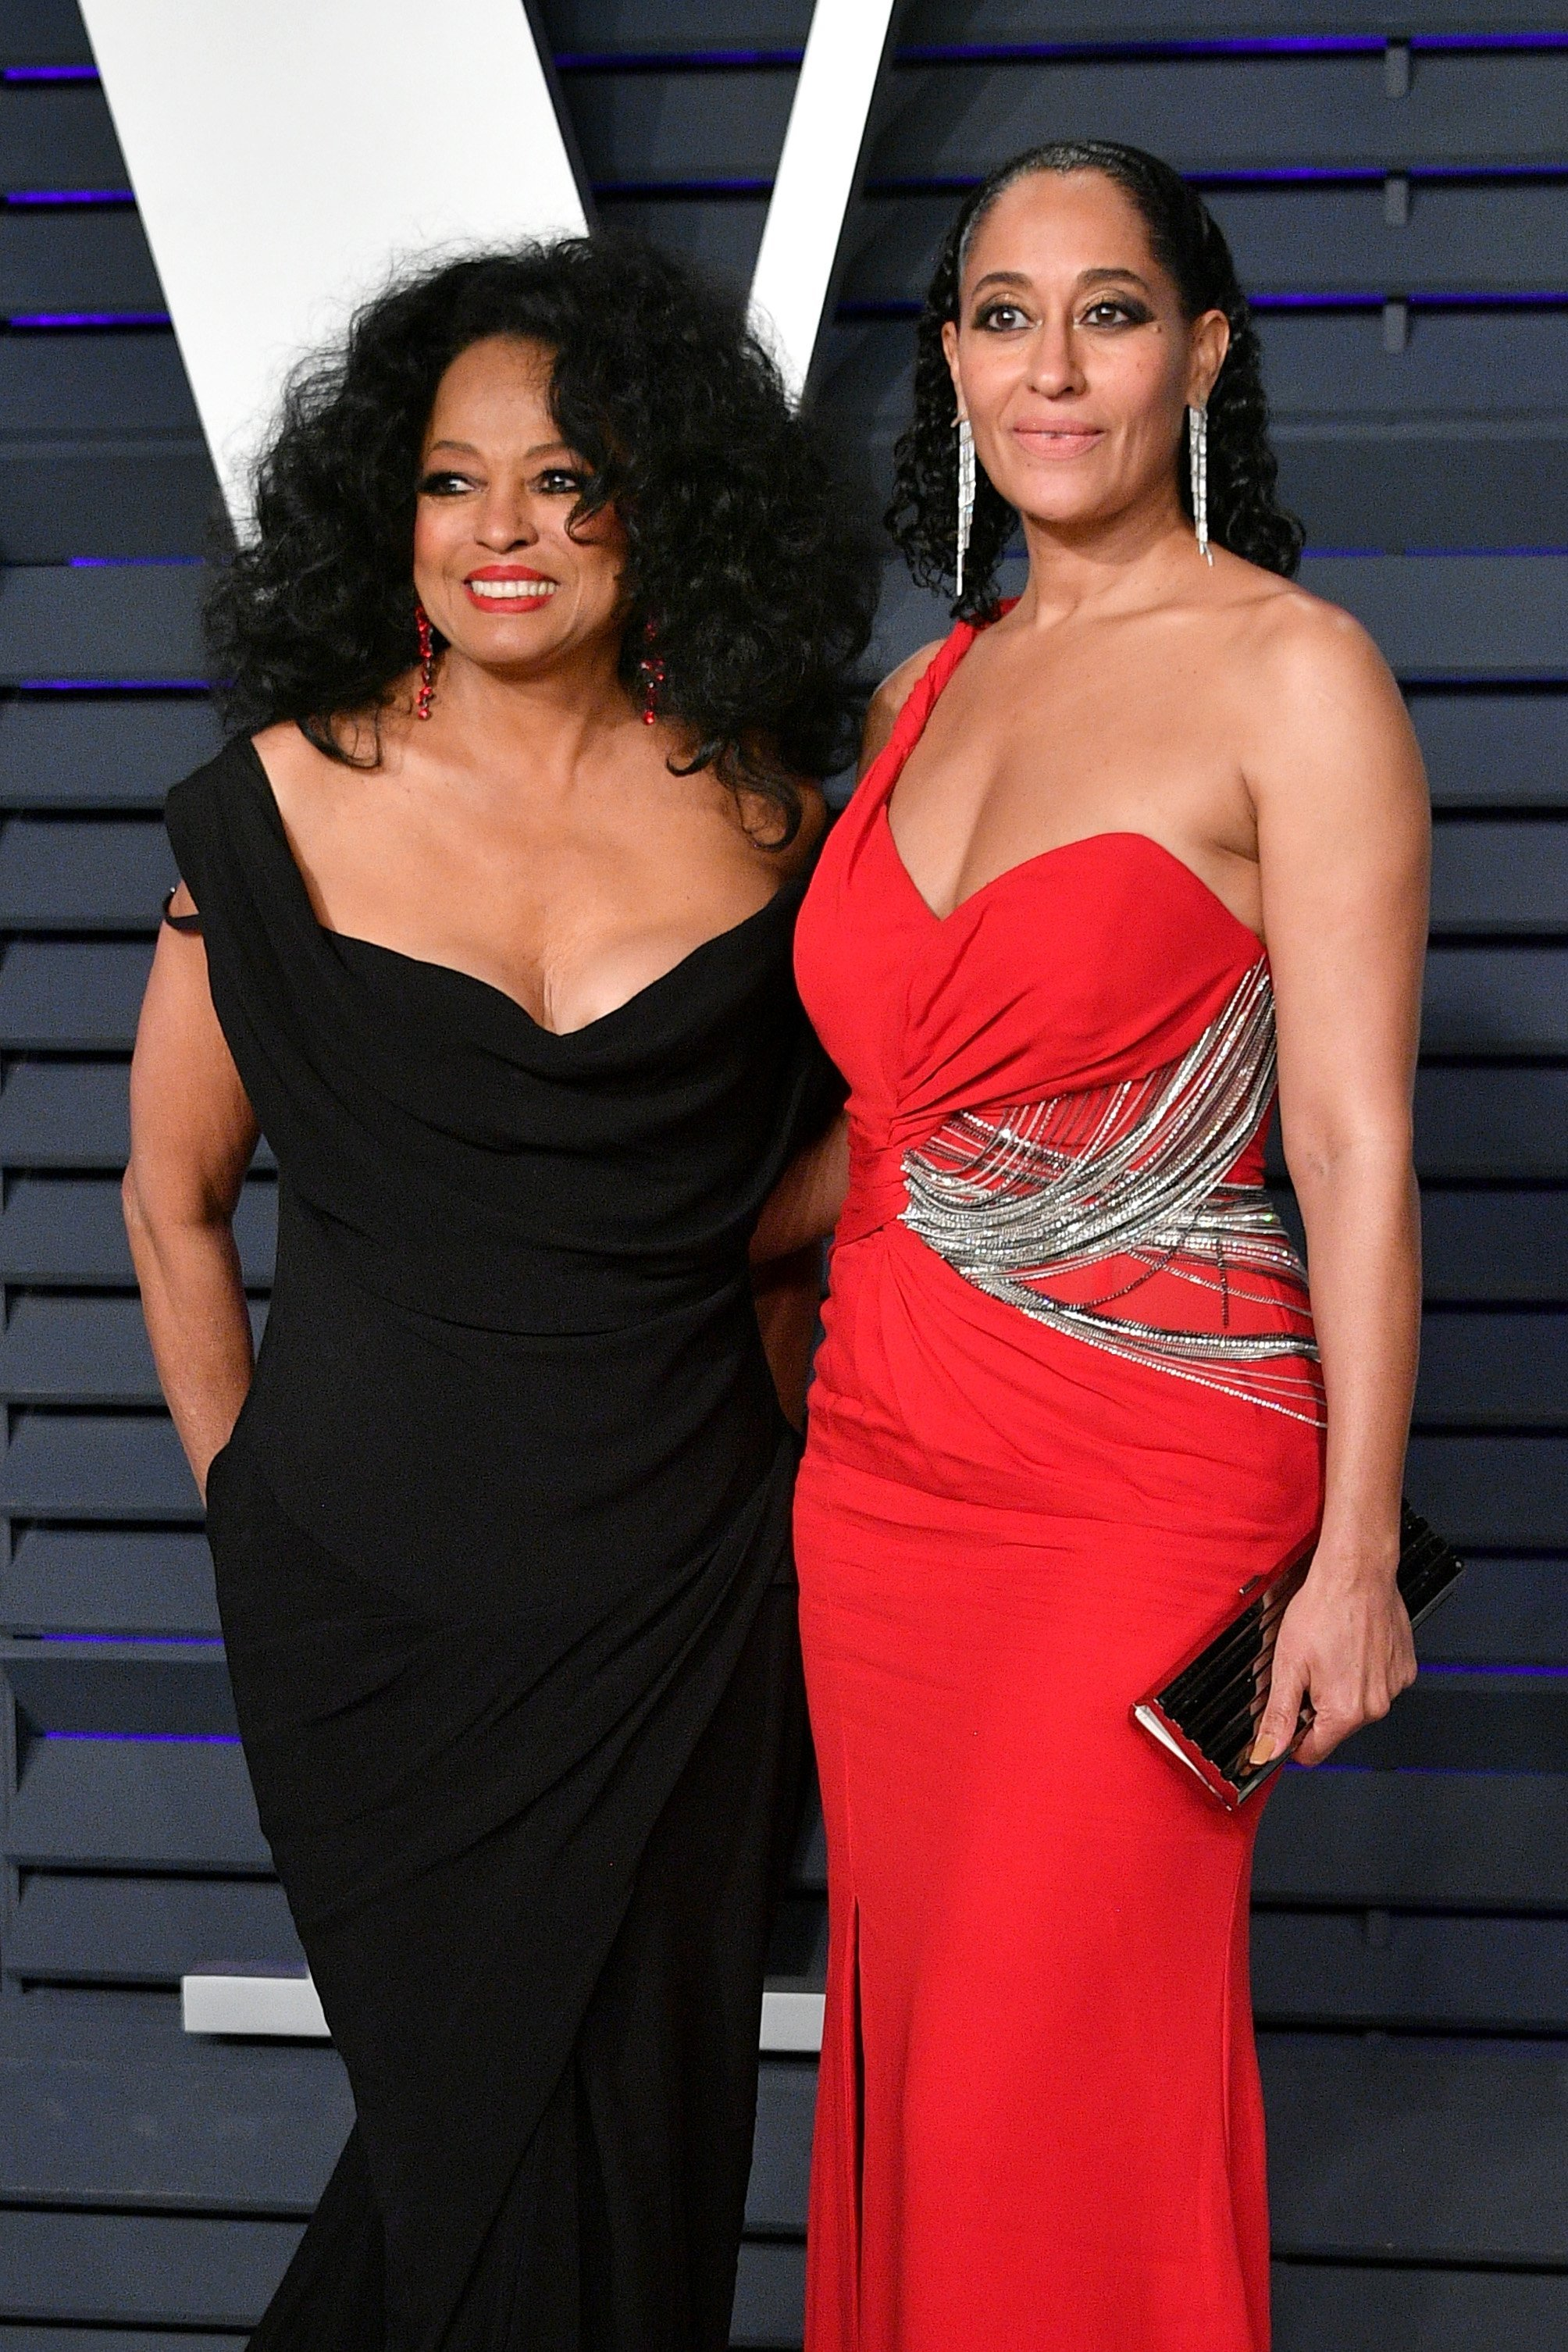 Diana Ross and her daughter, Tracee Ellis Ross pose for photos at the 2019 Vanity Fair Oscar Party. | Photo: Getty Images